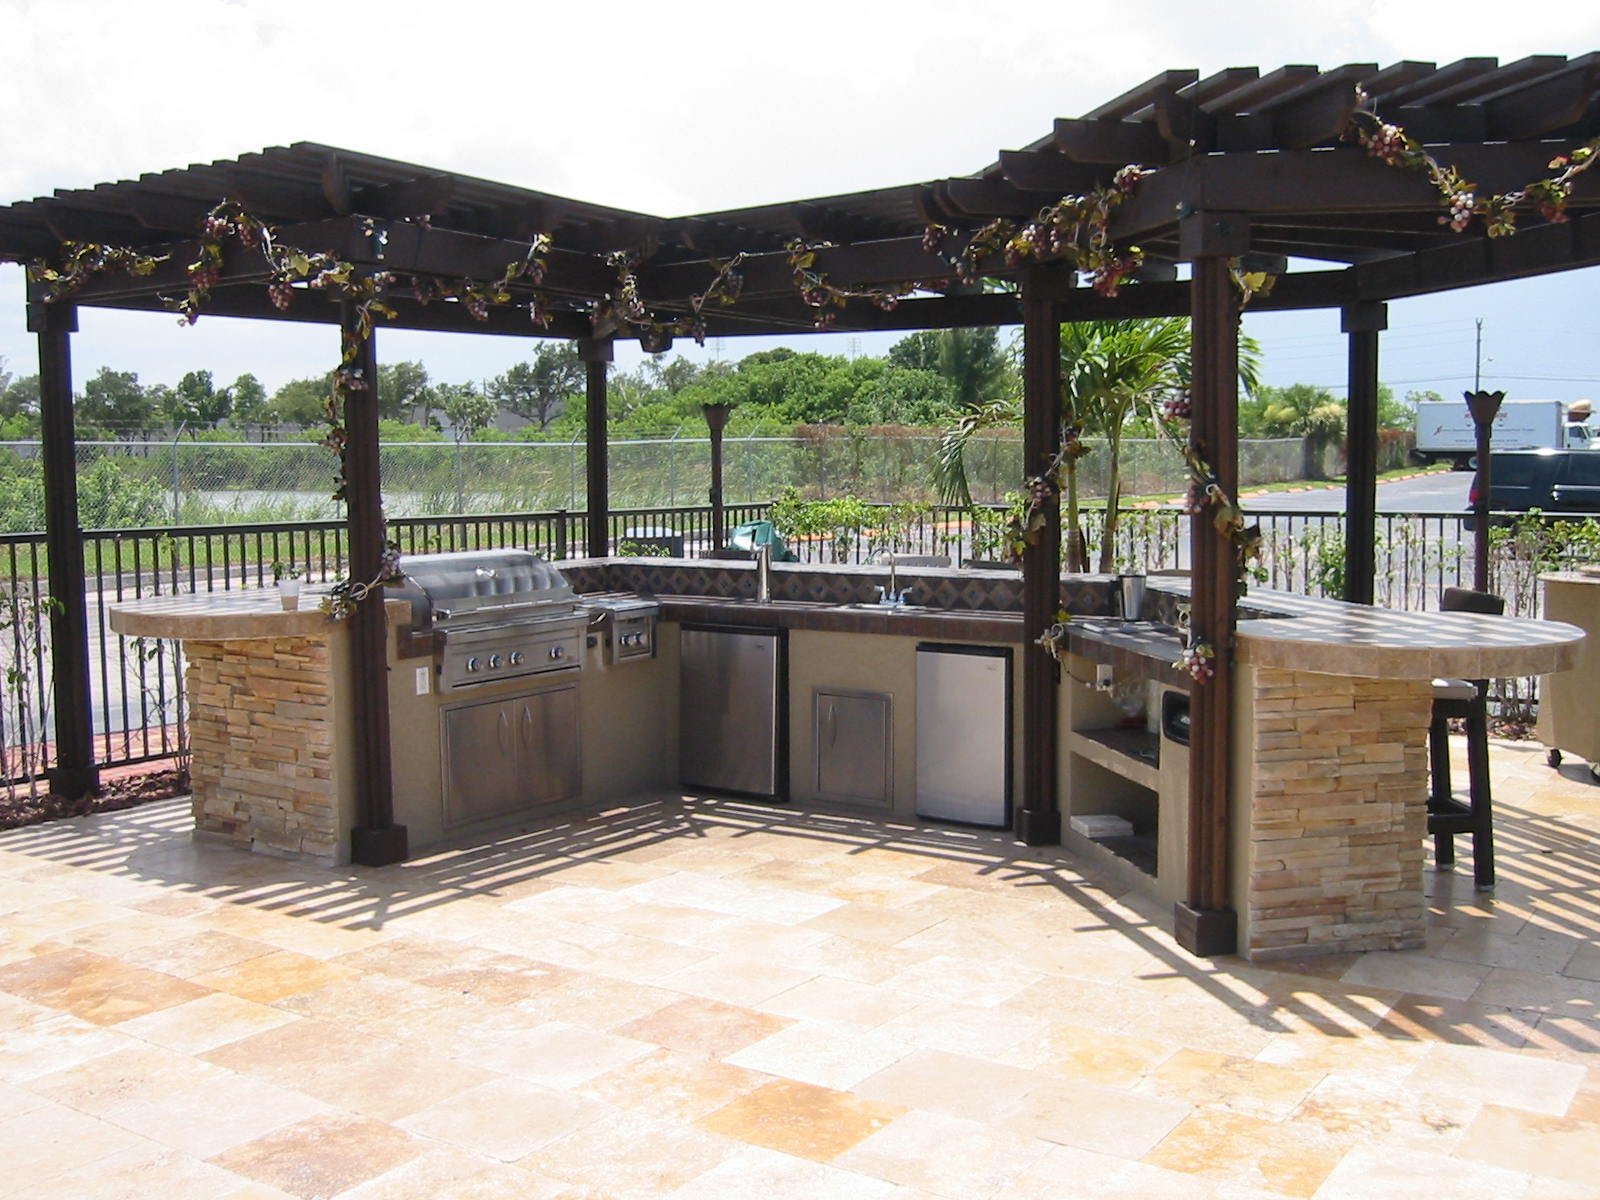 Custom Outdoor Designs : custom outdoor kitchen design in a outdoor room, with cover  ? Gas